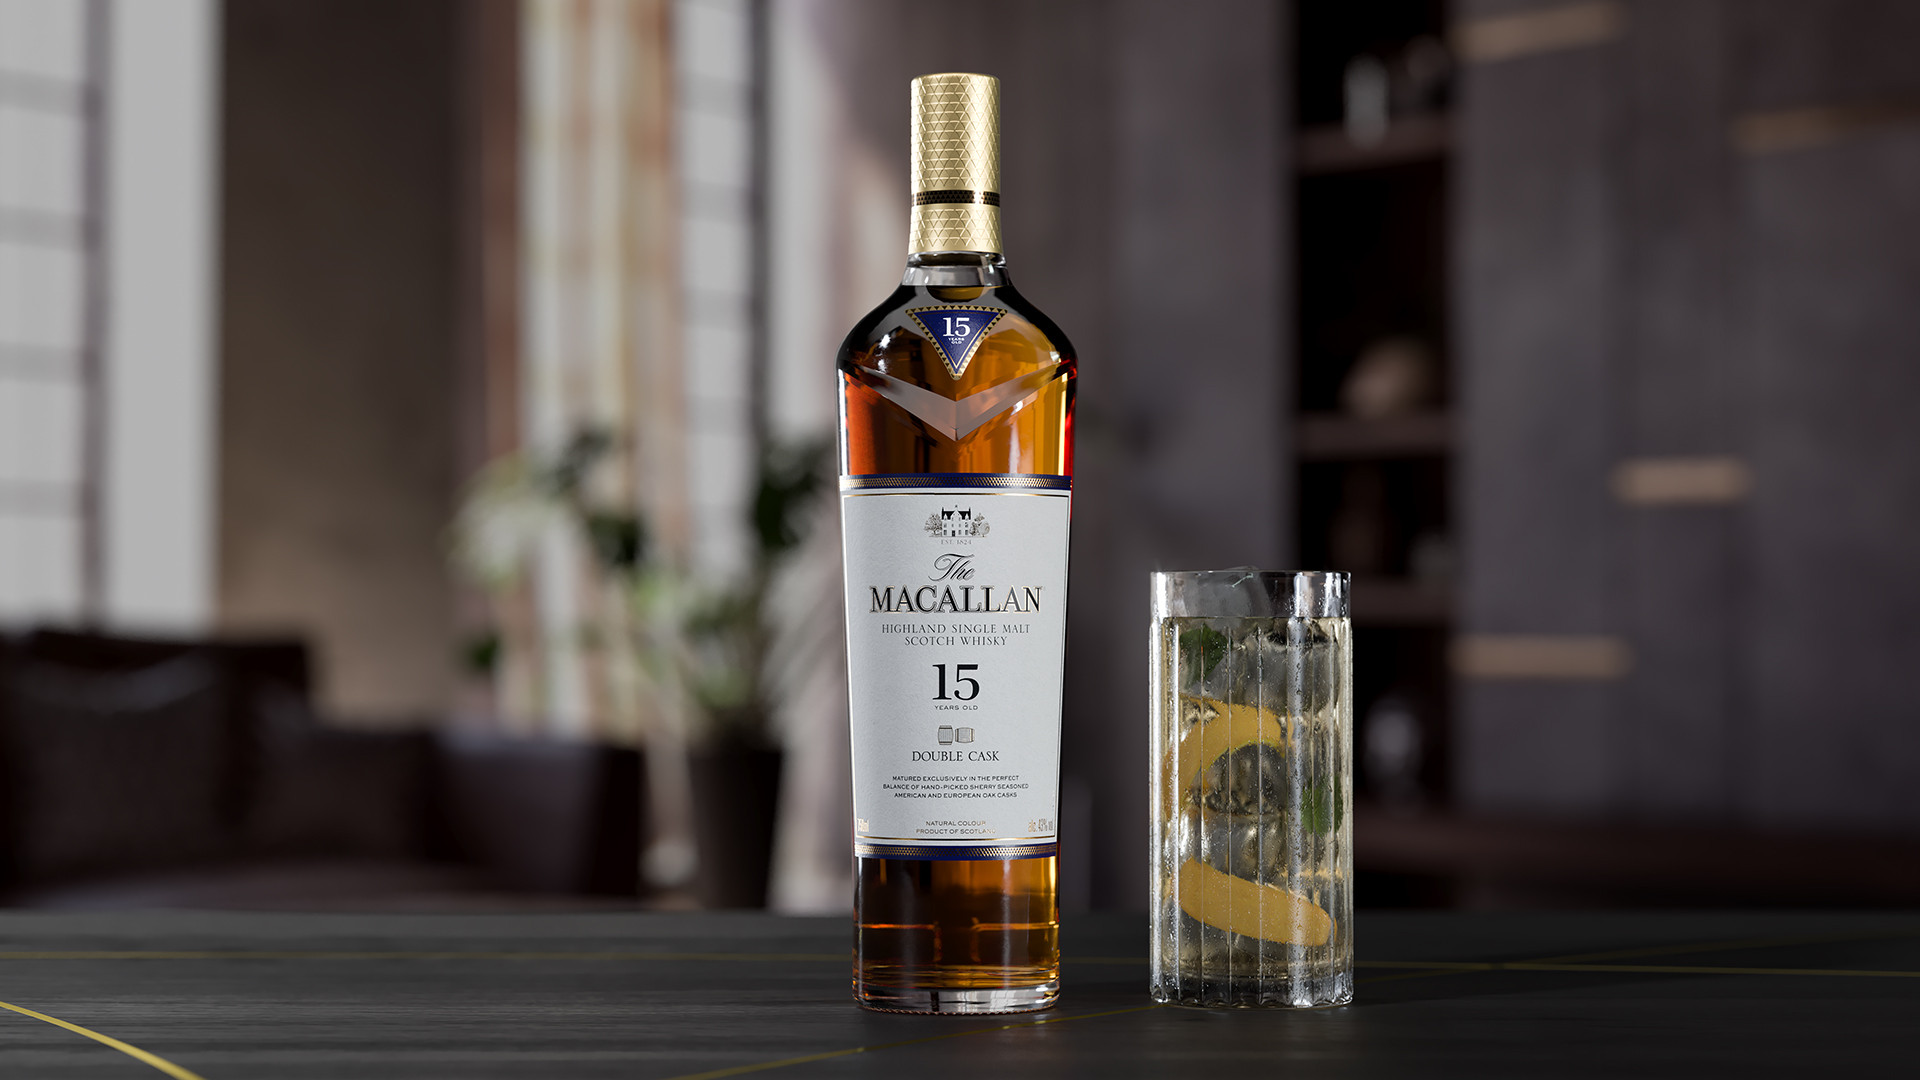 The Macallan Double Cask new releases